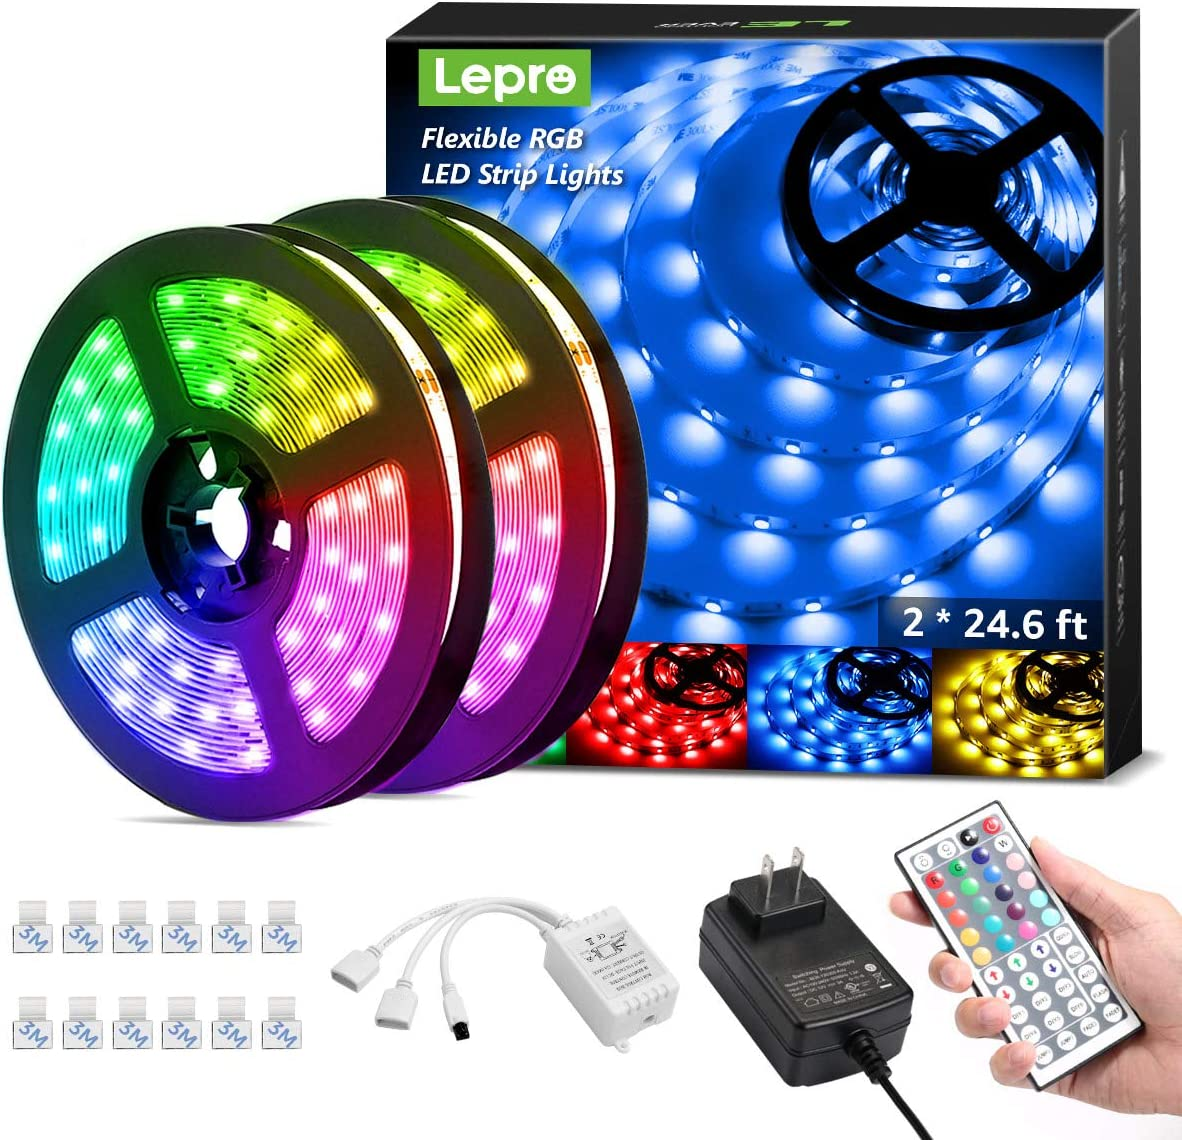 Lepro 50ft LED Strip Lights, Ultra-Long RGB 5050 LED Strips with Remote Controller and Fixing Clips, Color Changing Tape Light with 12V ETL Listed Adapter for Bedroom, Room, Kitchen, Bar(2 X 24.6FT): Home Improvement